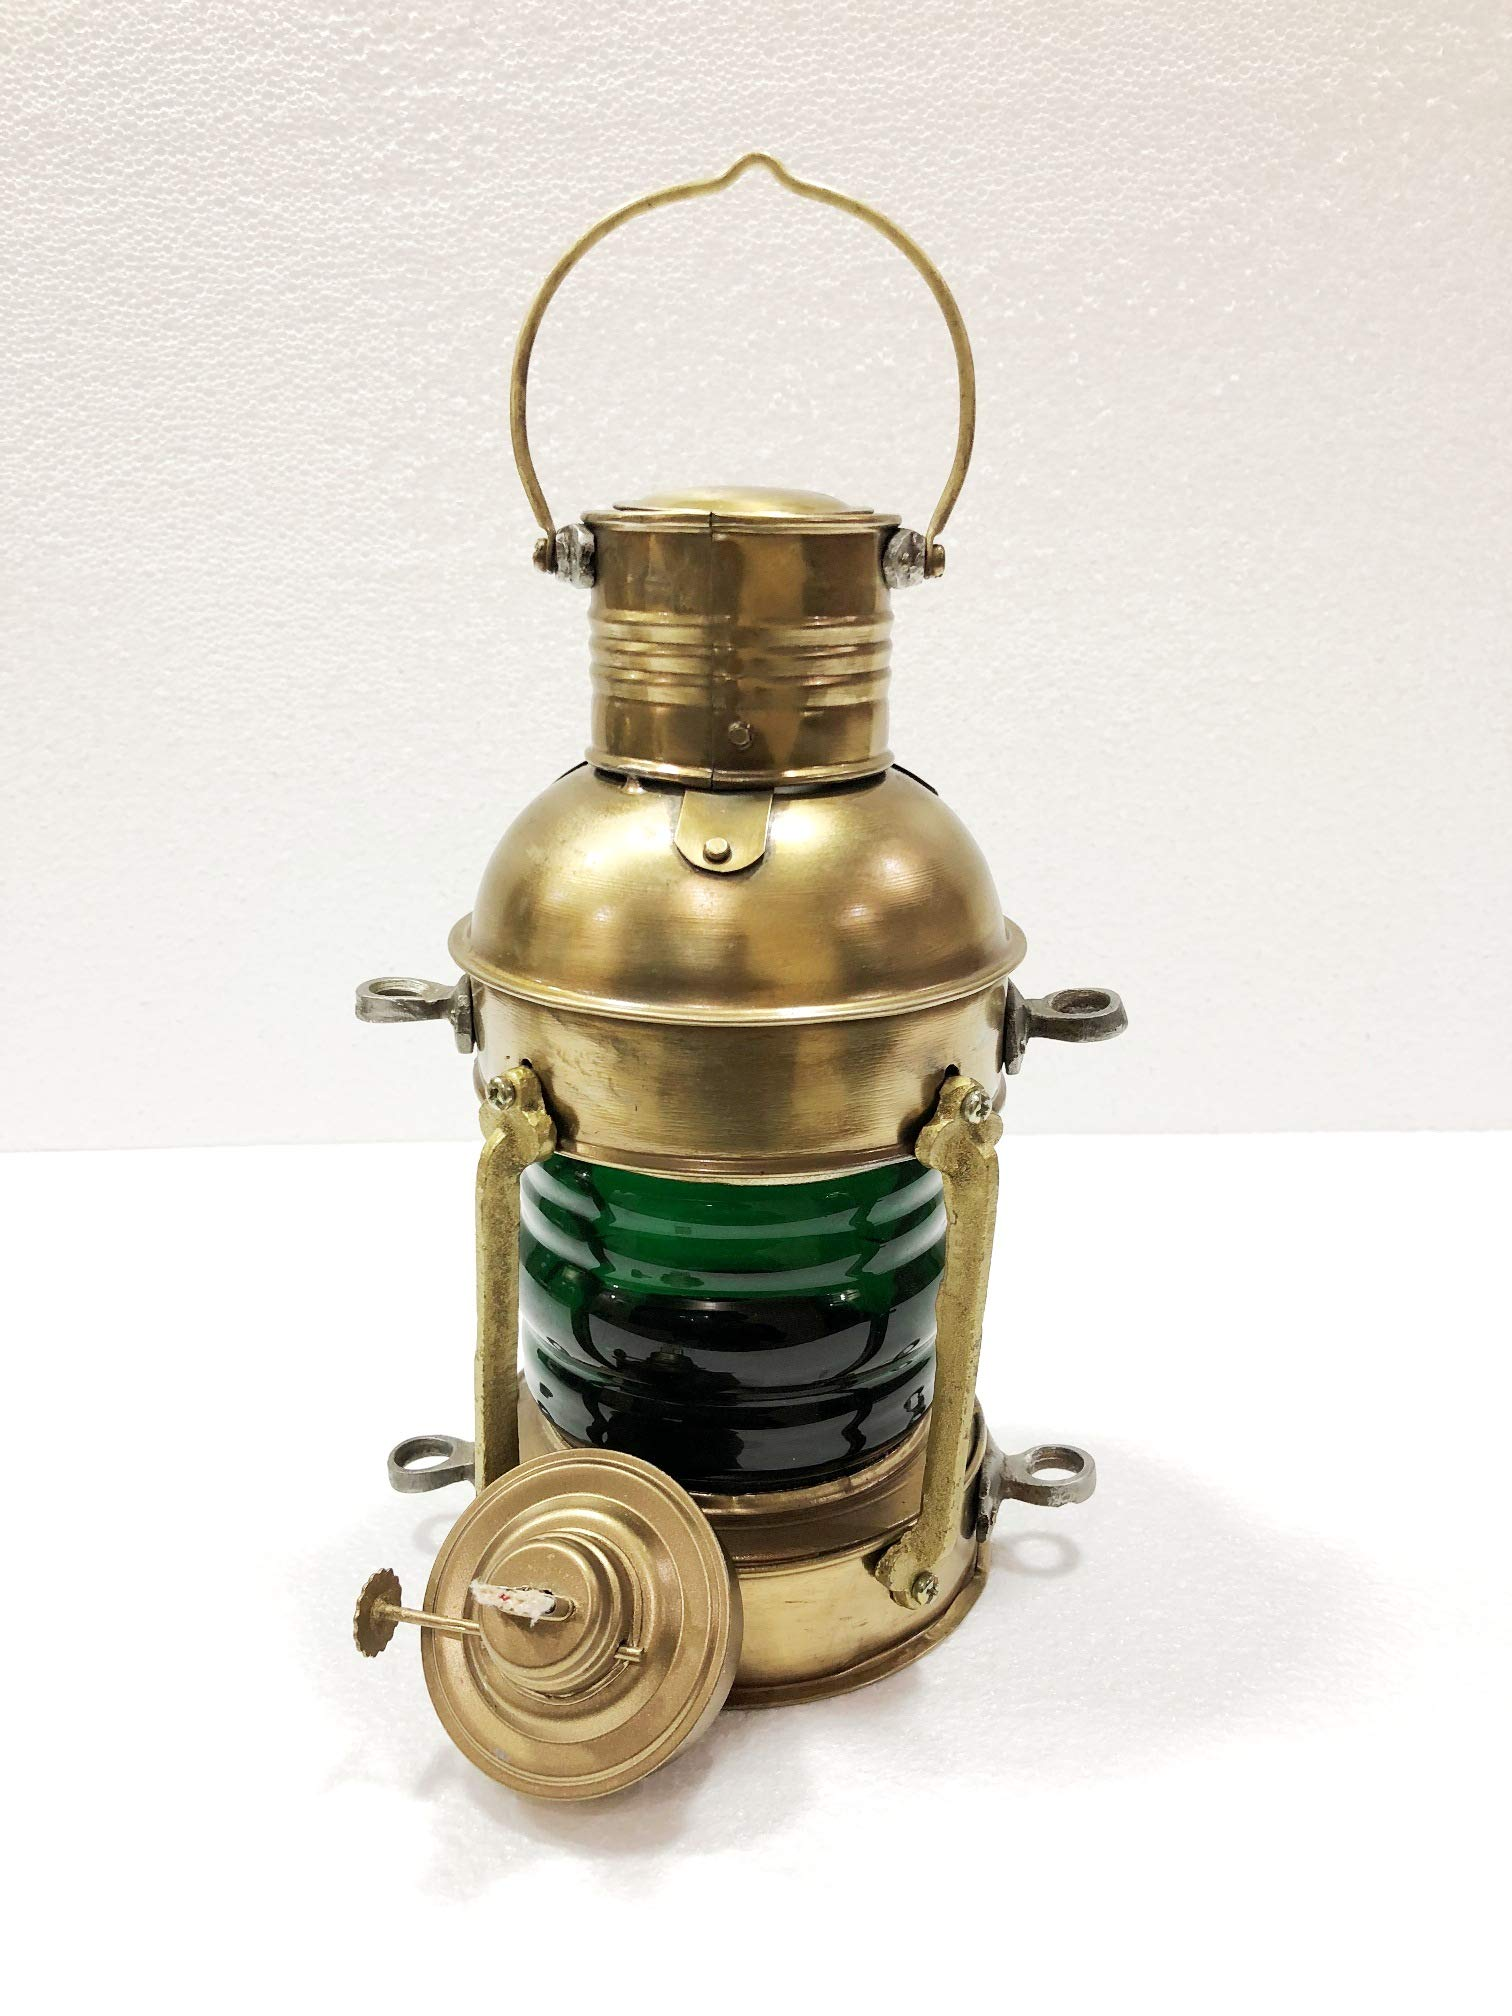 Nautical Antique 10'' Ship Lamp Boat Green Oil Lantern Maritime Collectible Decorative